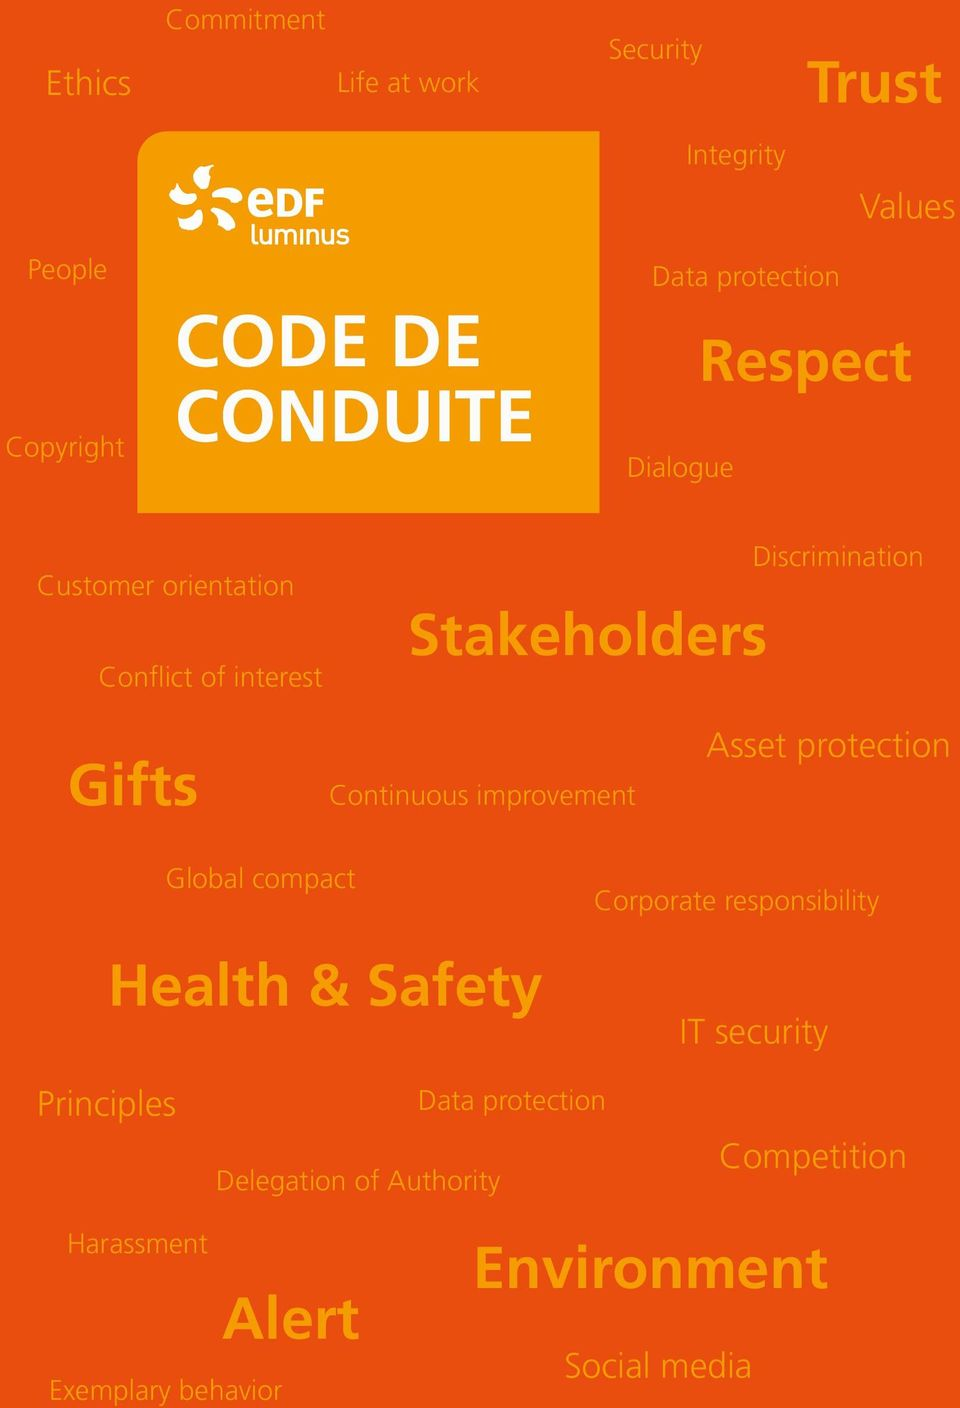 Continuous improvement Asset protection Global compact Health & Safety Corporate responsibility IT security